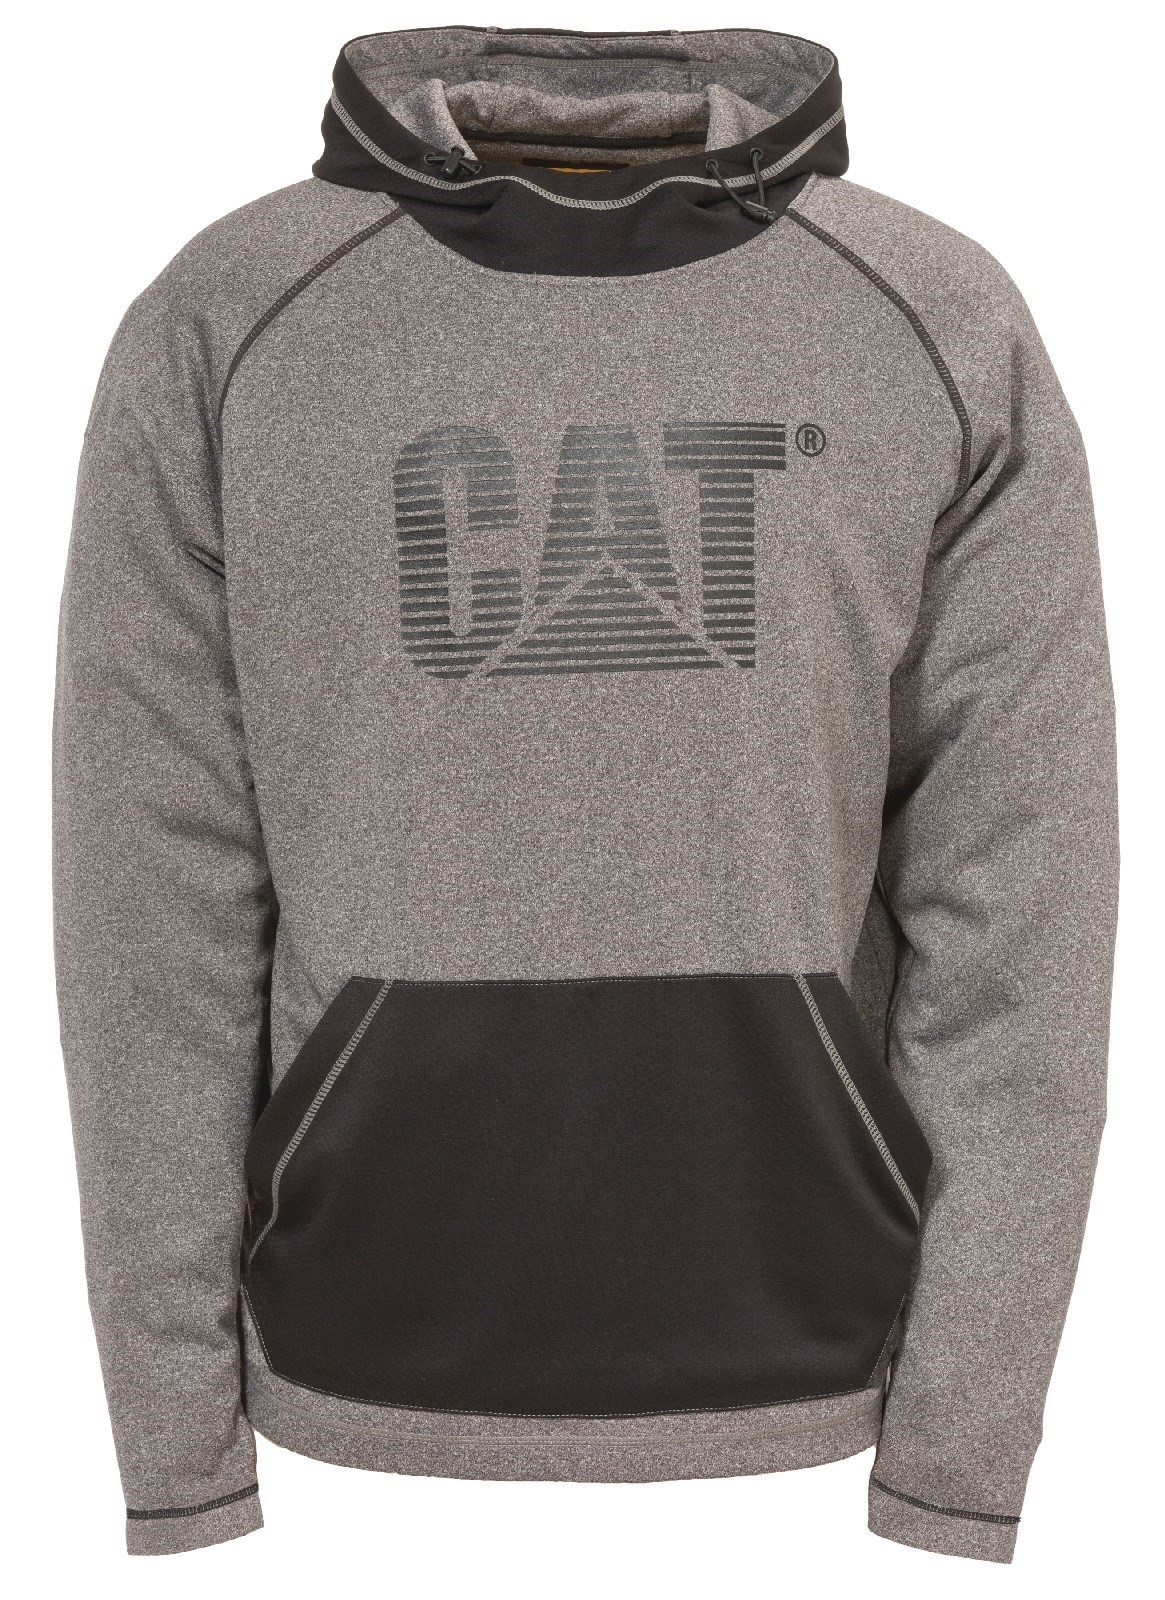 Sweatshirt Endurance Cat Fleece Apparel Hoodie Casual Grey C1910054 Z00WPwUEq